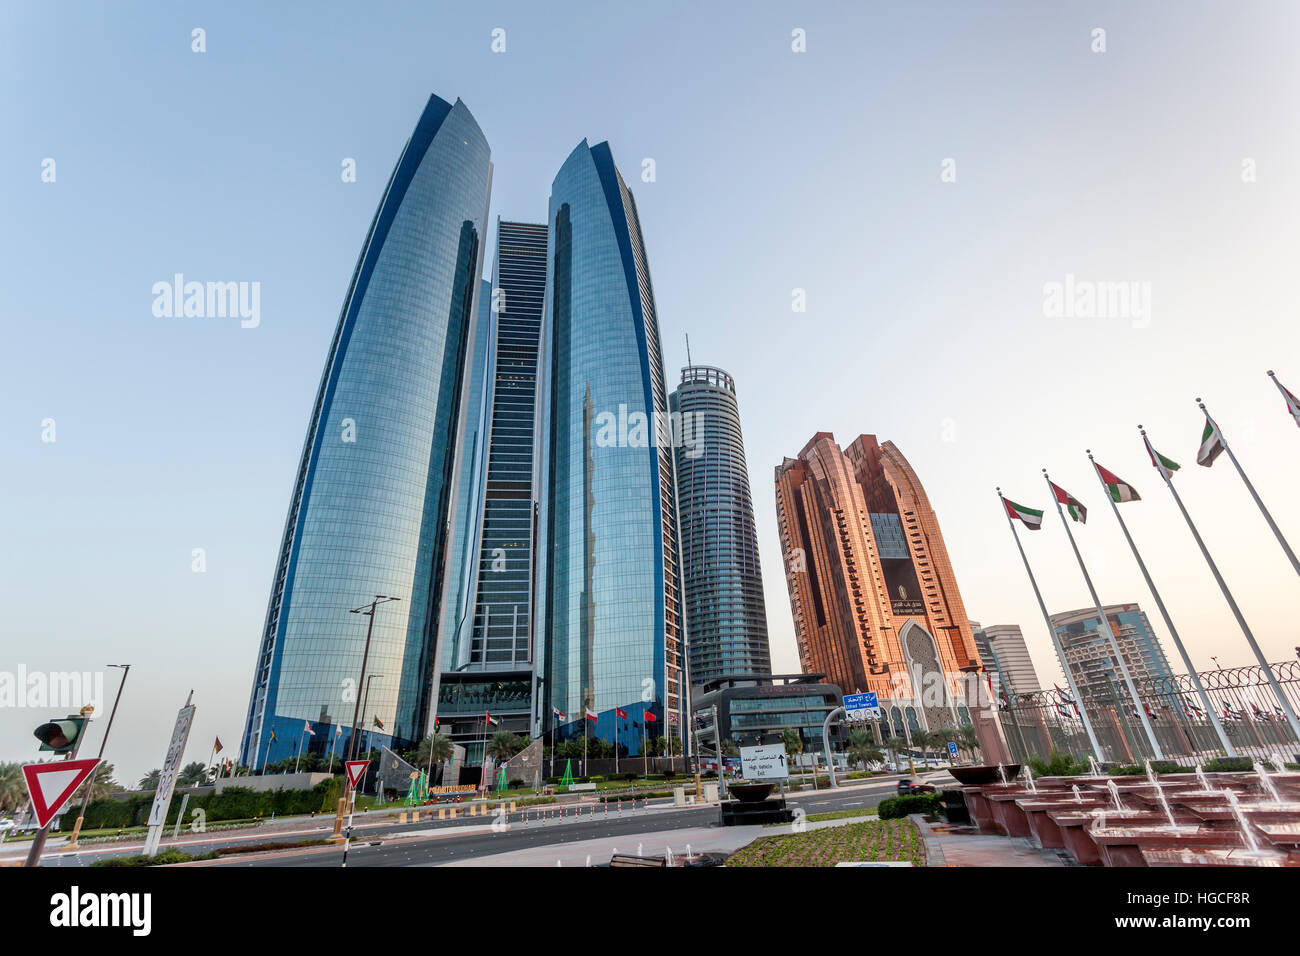 The Etihad Towers in the city of Abu Dhabi - Stock Image